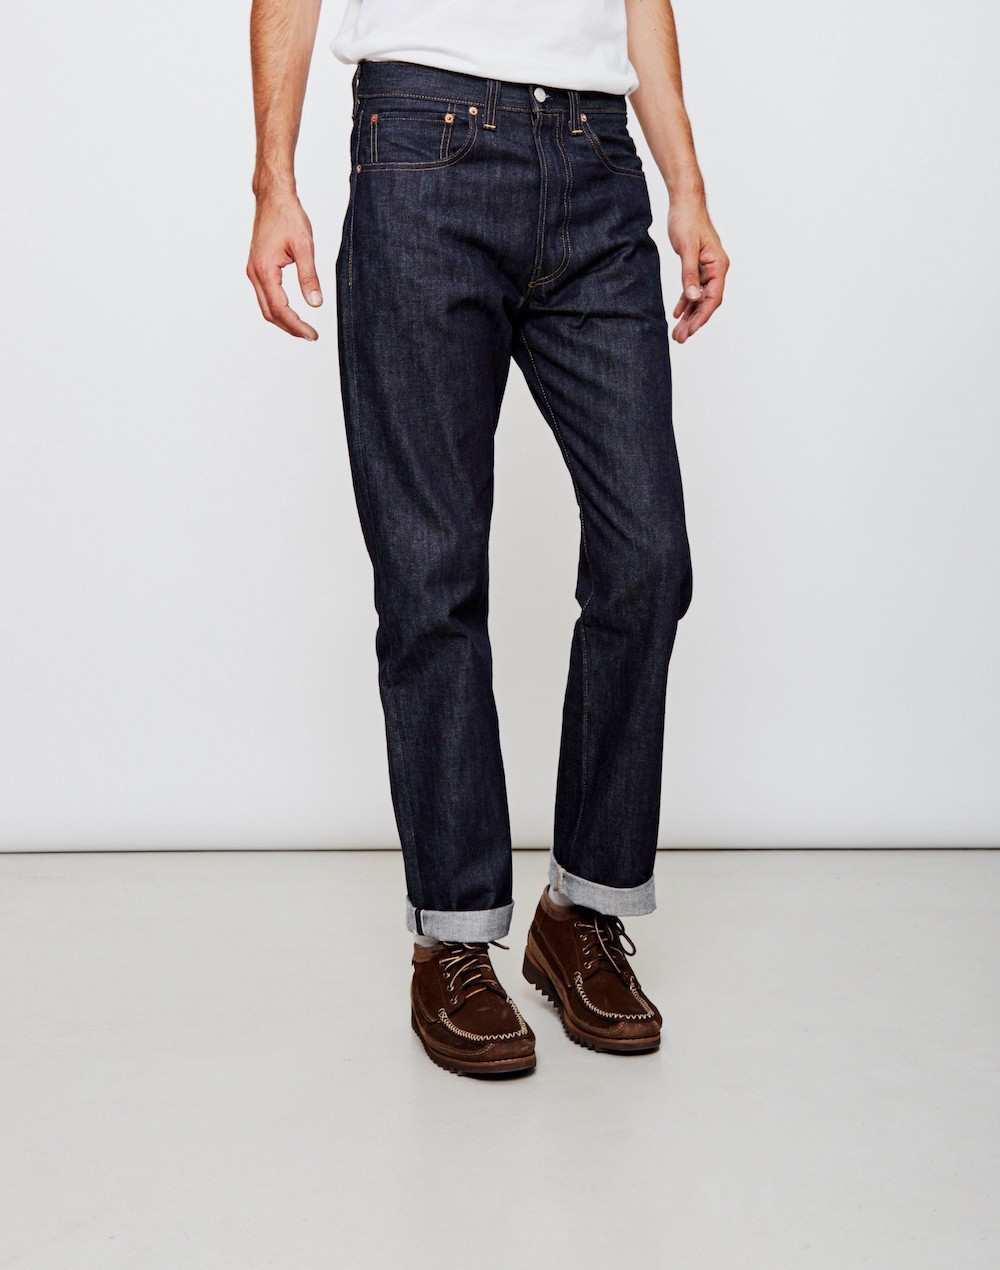 levis navy denim men